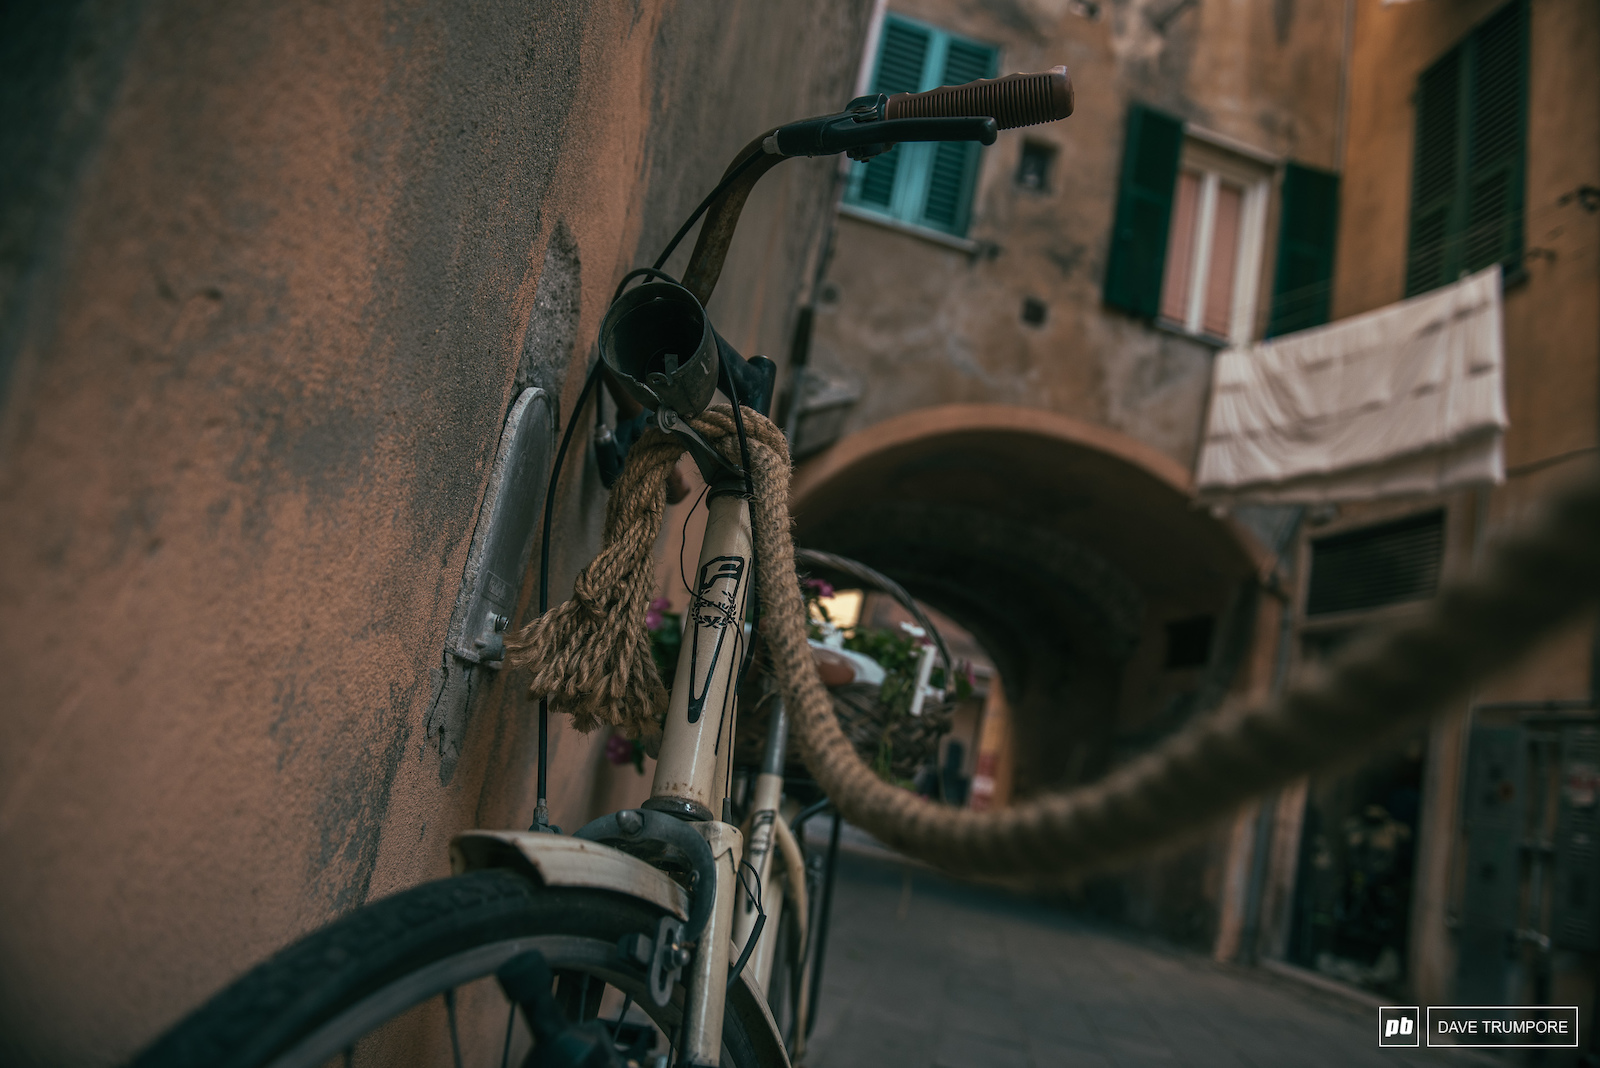 Even the bike locks are as laid back as the locals in Finale.